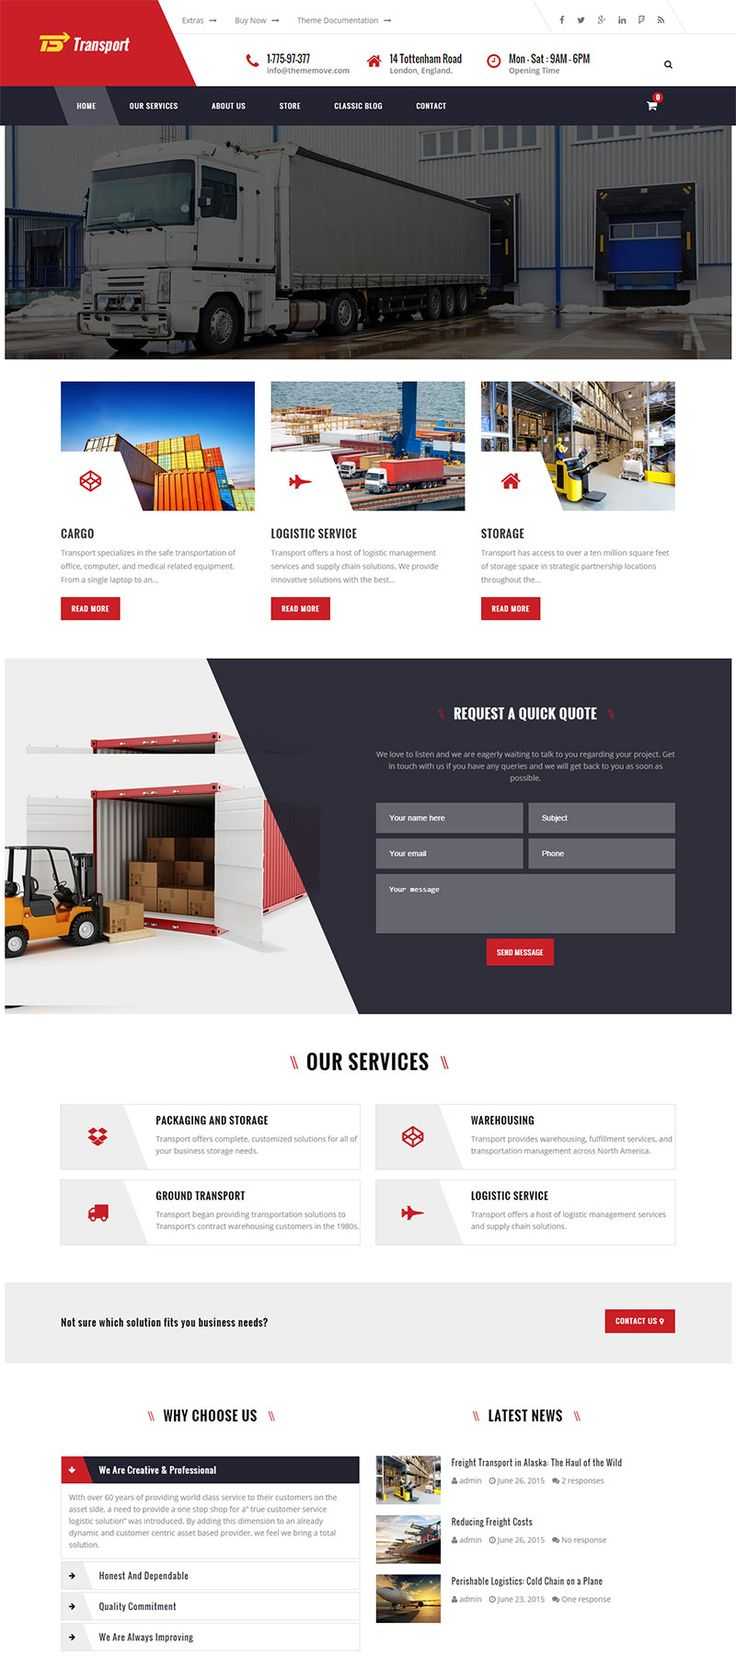 Best Premium Transportation and Logistic Theme #wordpress #transport #corporate